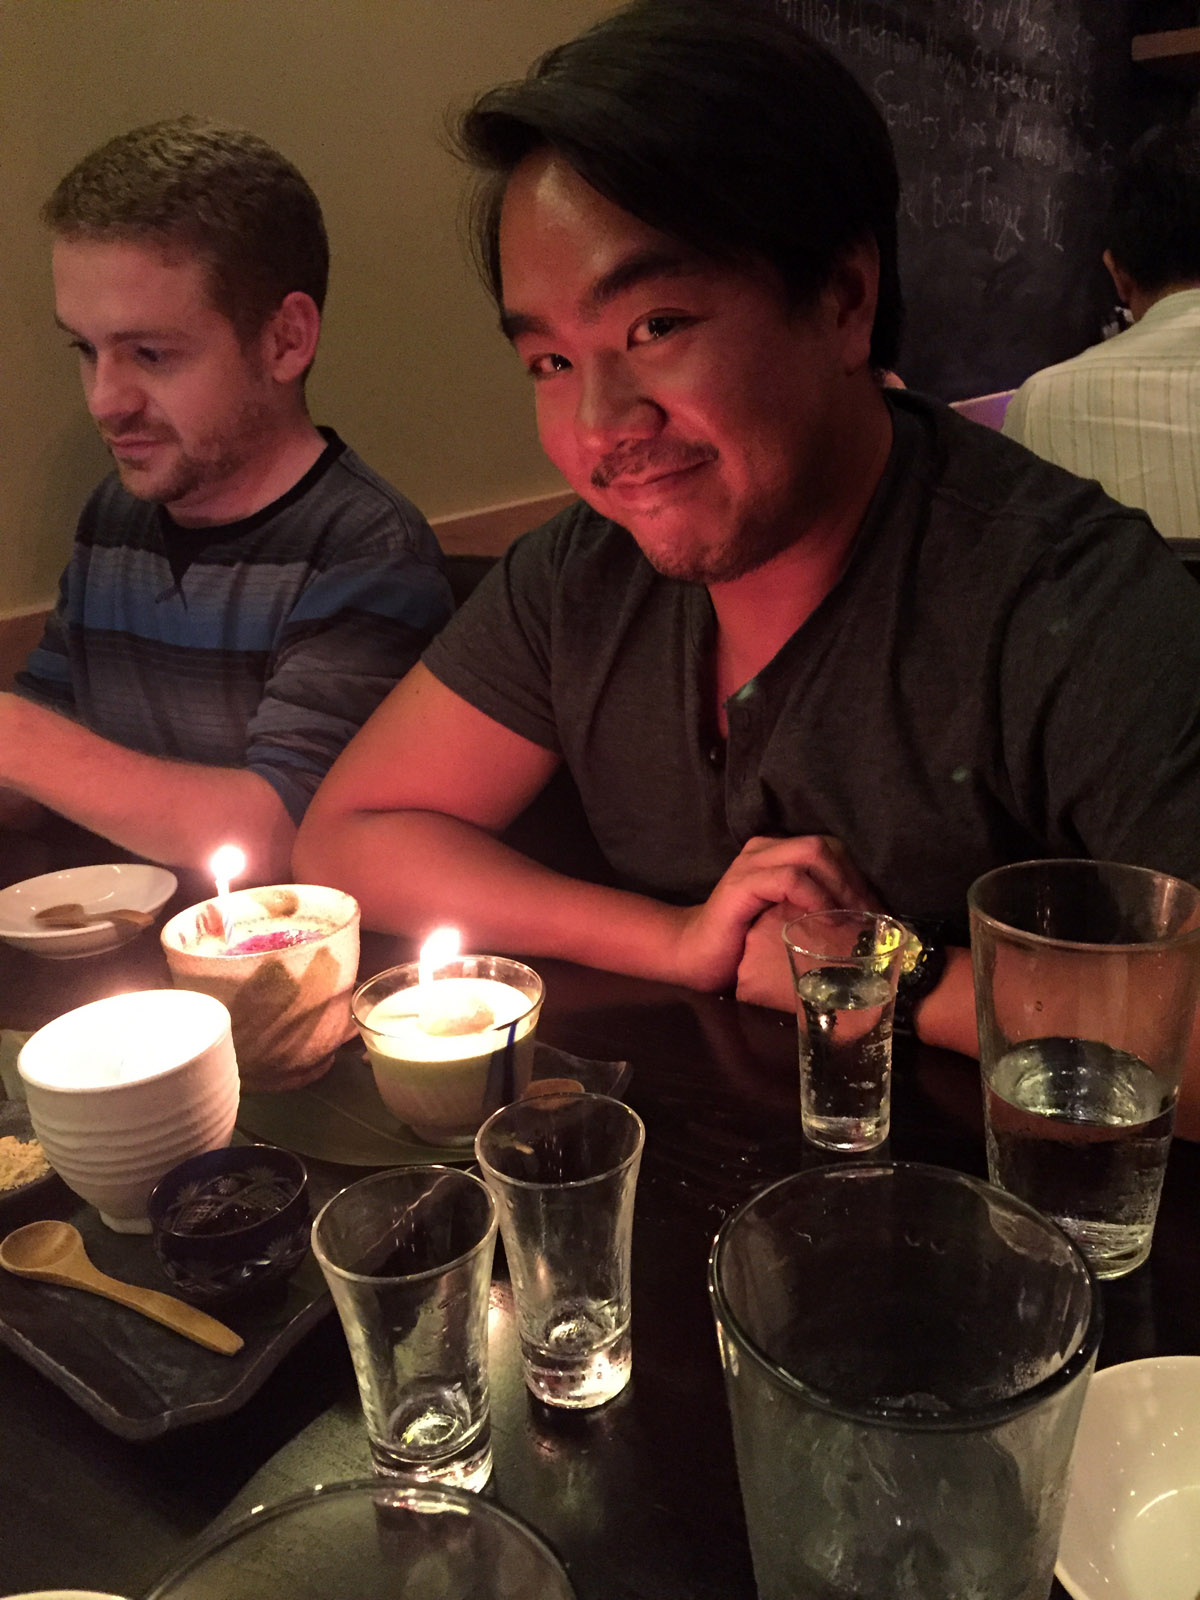 One of the biggest topics of conversation at Dinner Club last week was how David officially became an American citizen the morning before the meeting! To celebrate, Amanda subtly asked our server (who was AMAZING, by the way) to put together a dessert combo that we could share in celebration of David's achievement.  If I recall the combo consisted of a creme brûlée, a black sesame mousse, and a panna cotta. We also ordered two bottles of dessert sake to compliment the sweets. Because Dinner Club scoffs at your one-bottle-of-dessert-sake-is-enough norms.